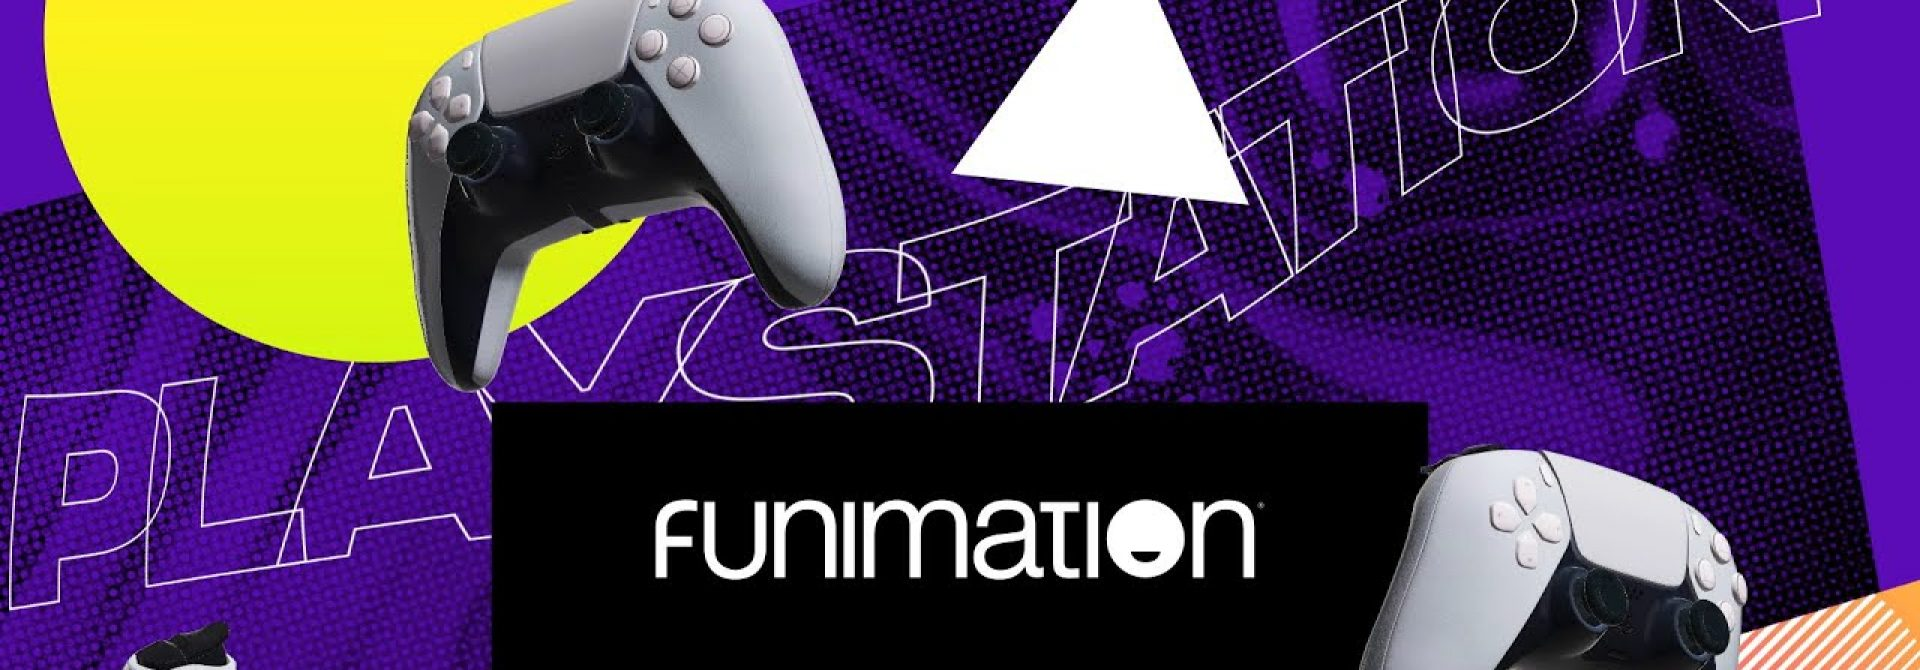 Funimation Rolls Out Updated App For Playstation